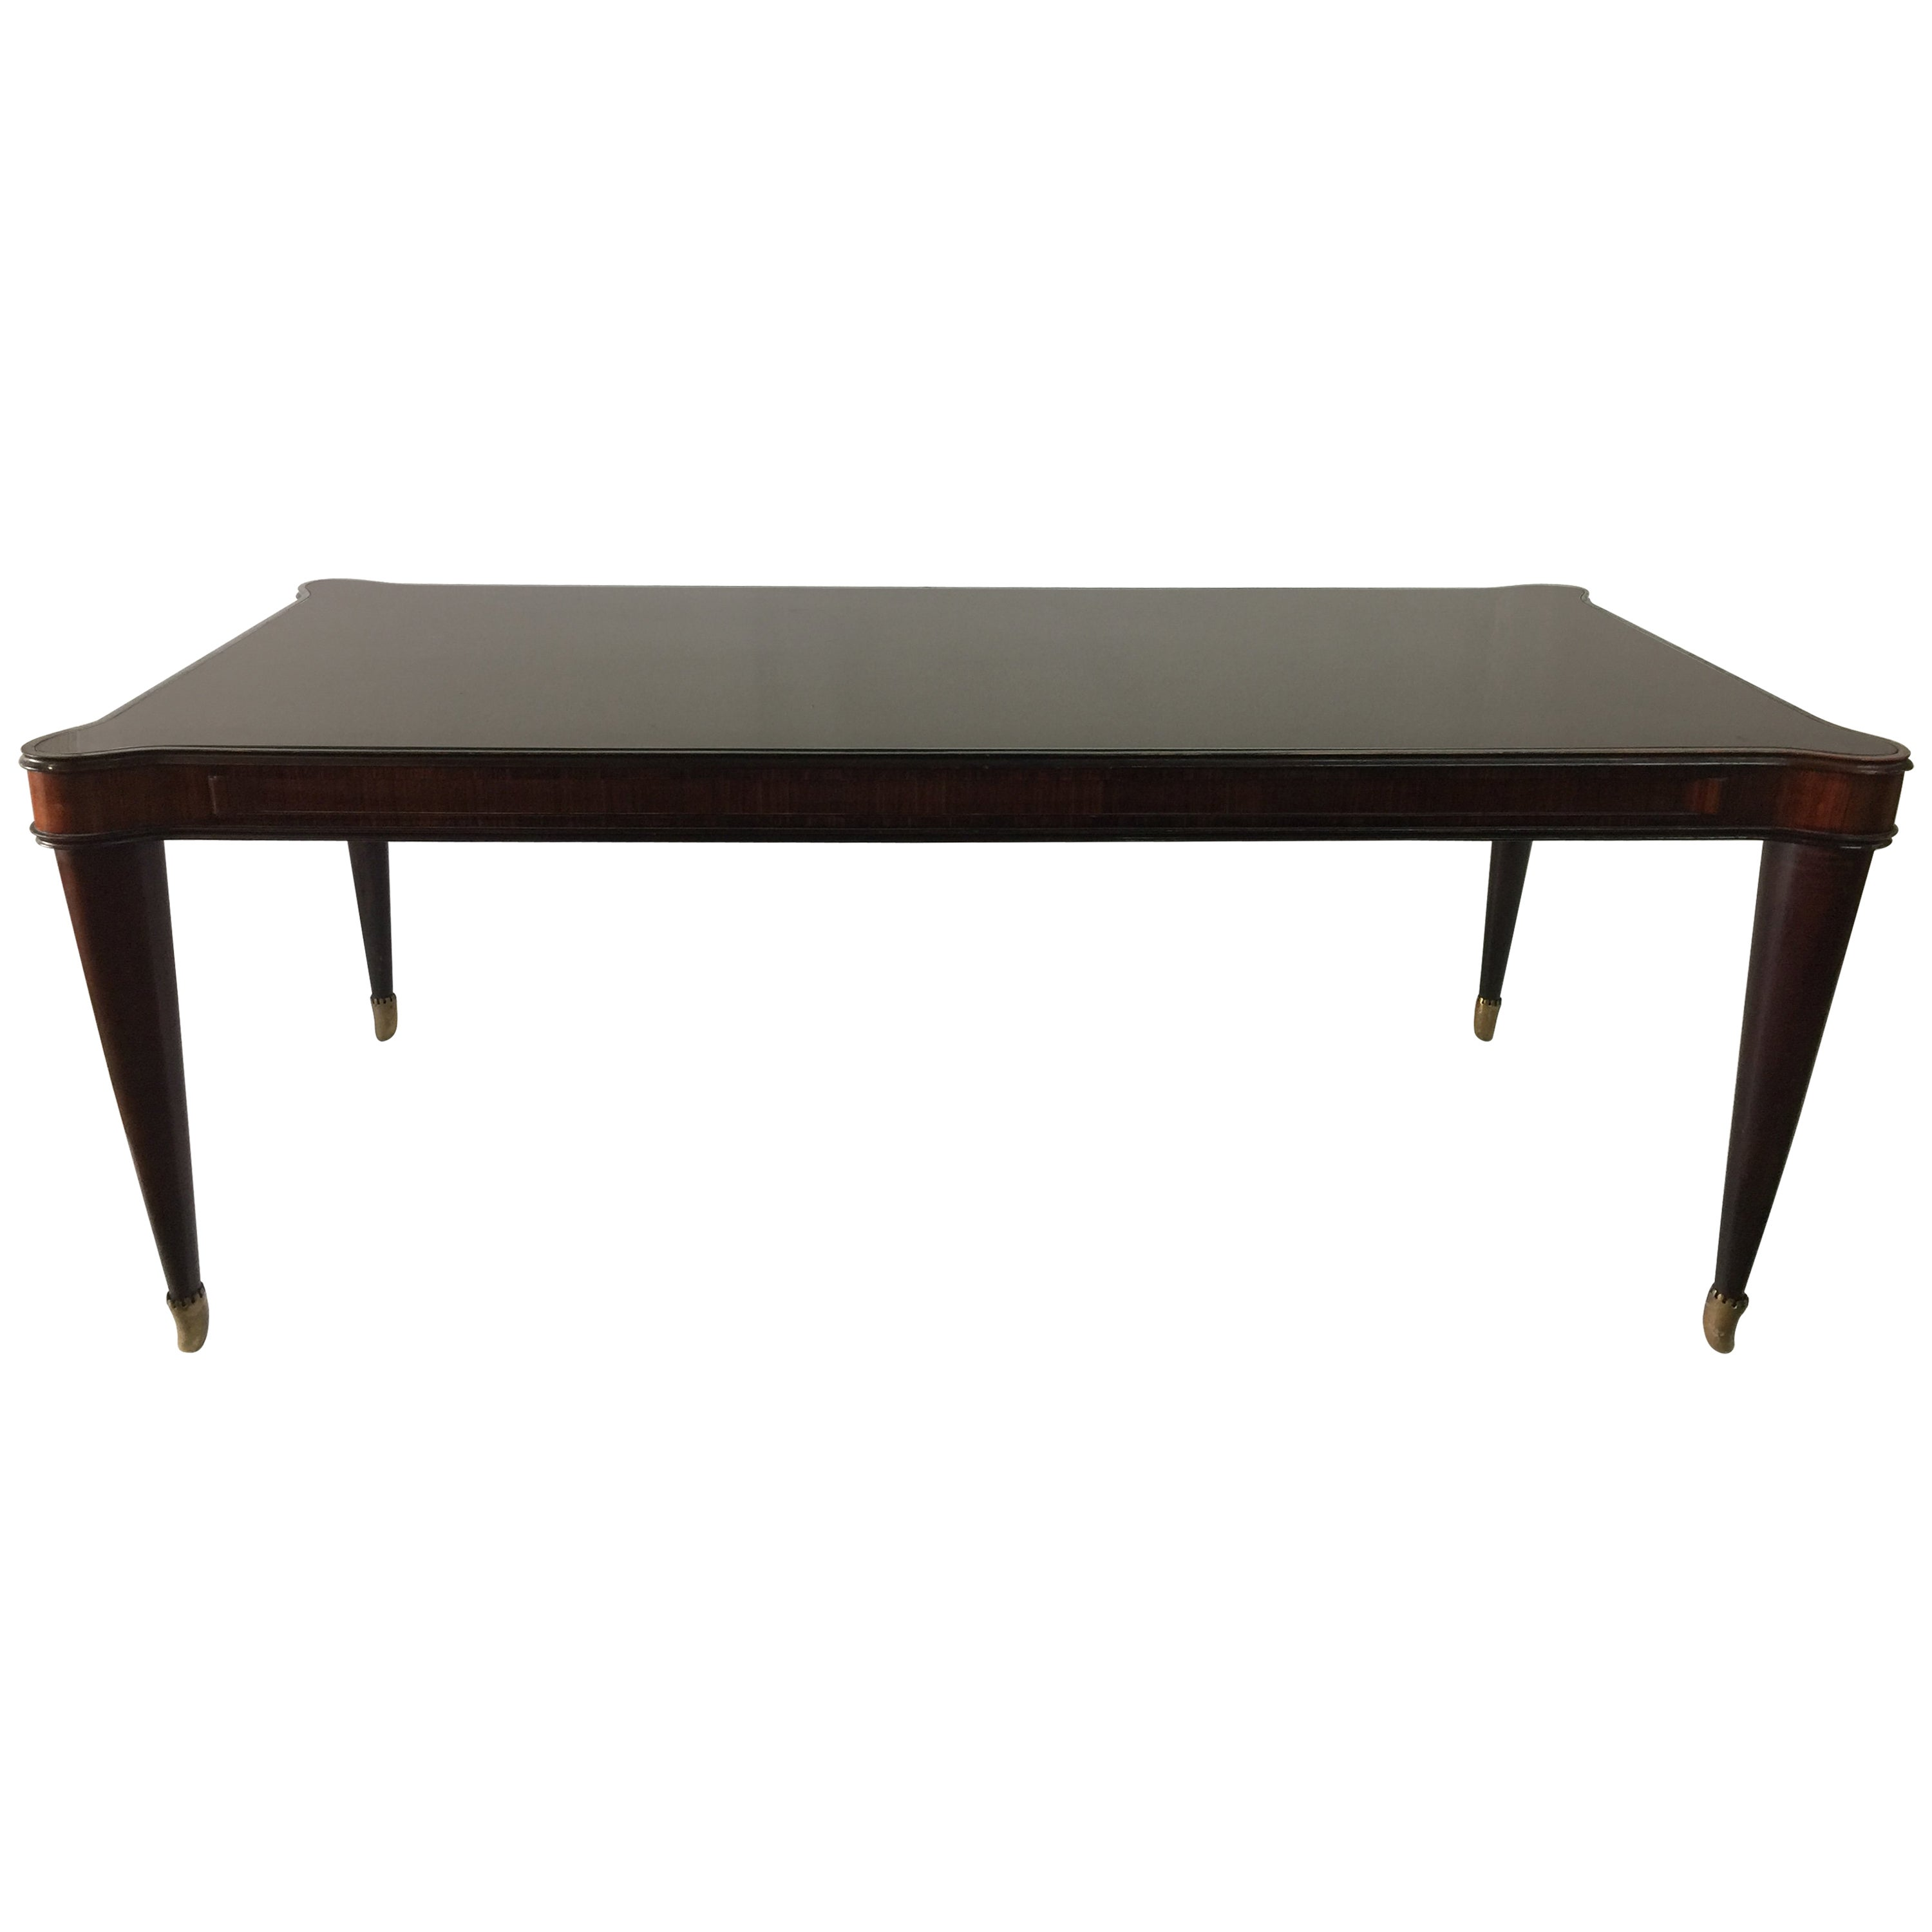 Paolo Buffa Vintage Italian Scalloped Top Glass Dining Table